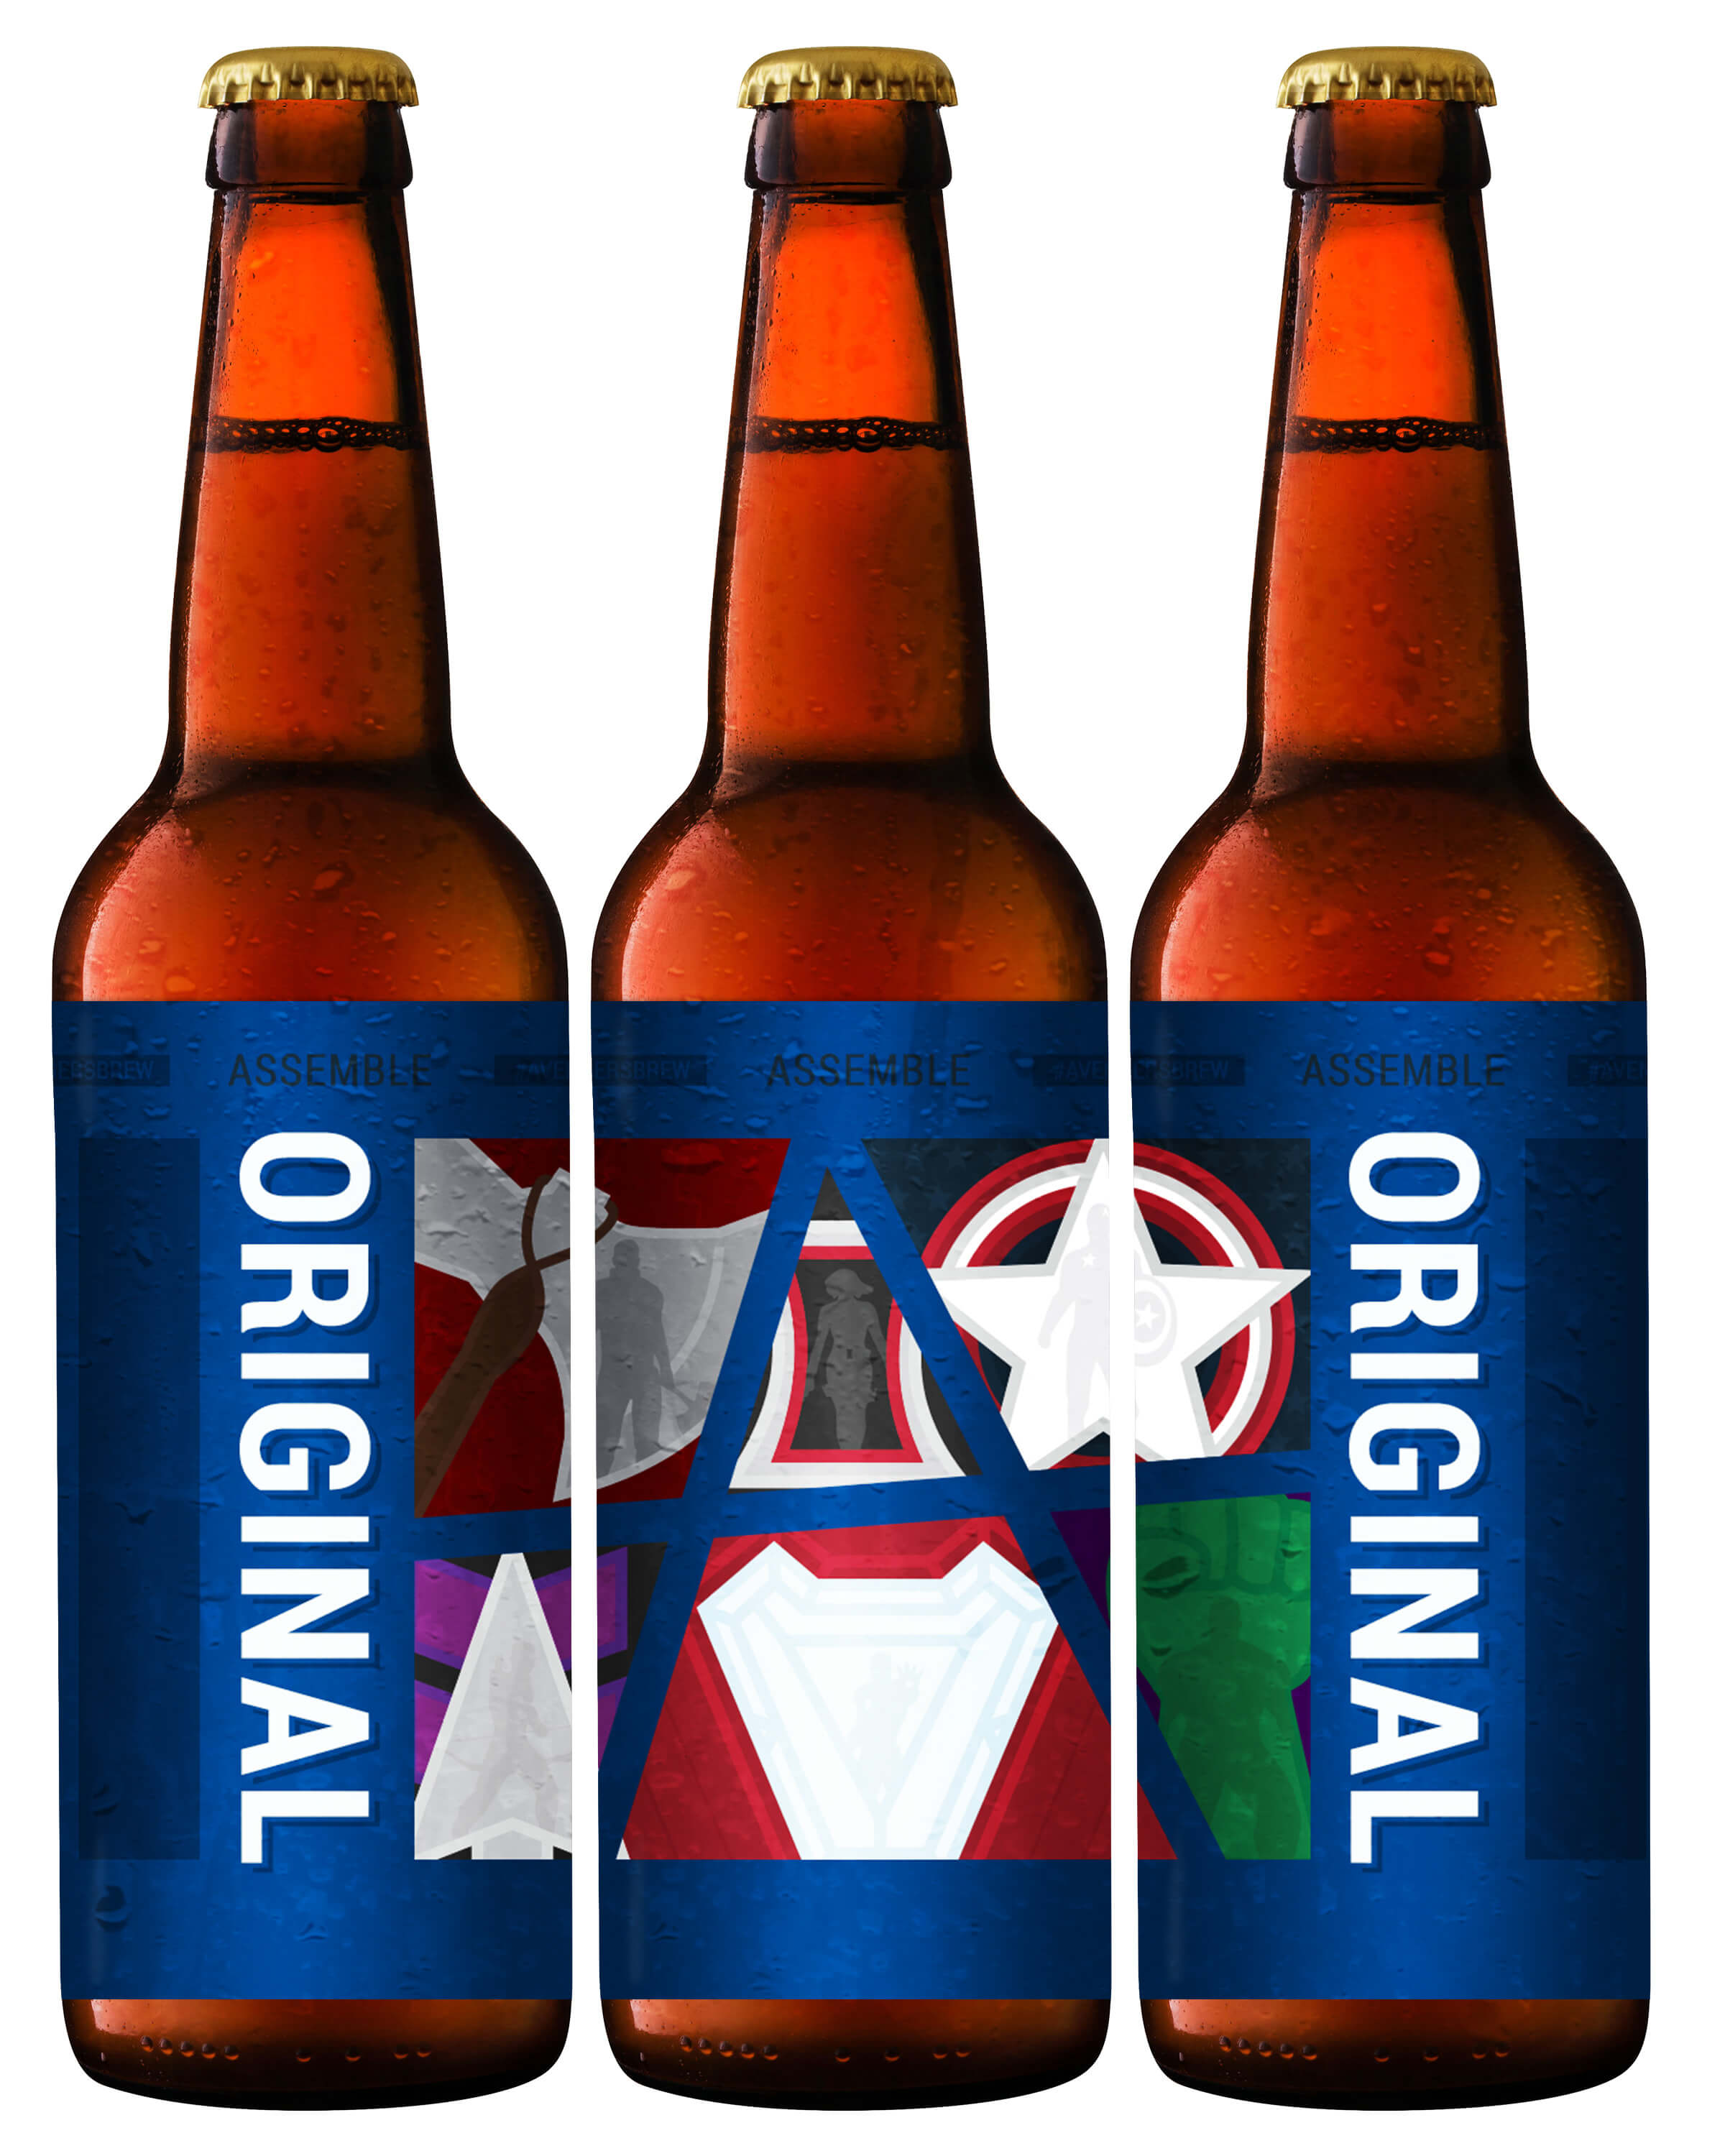 image about Printable Beer Labels named 12 Avengers Beer Labels for a Surprise-ous Endgame Visiting